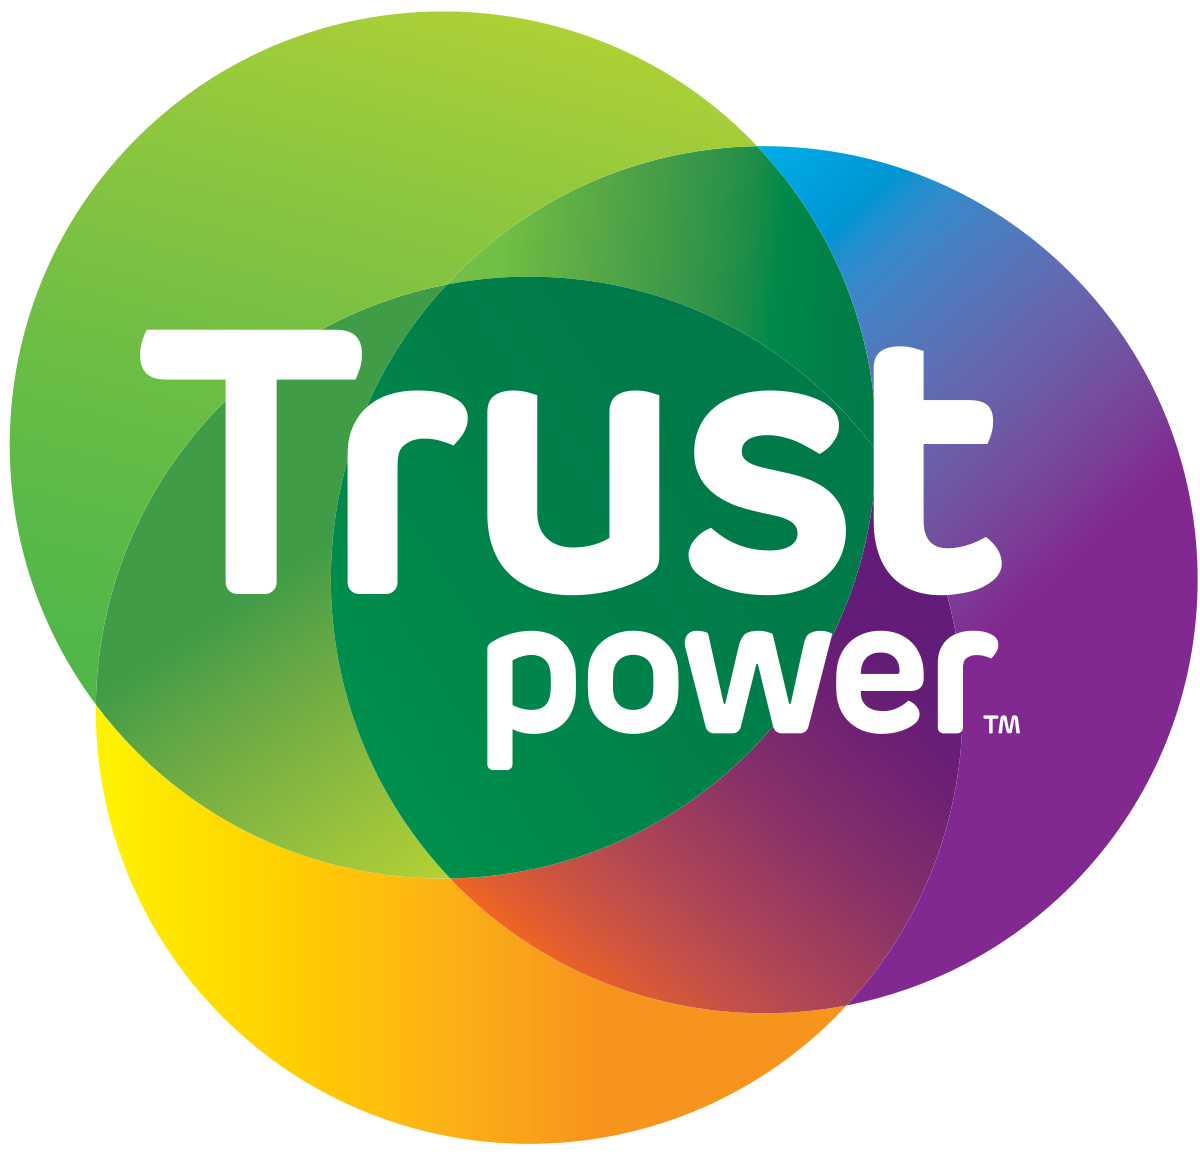 Trustpower logo in black background